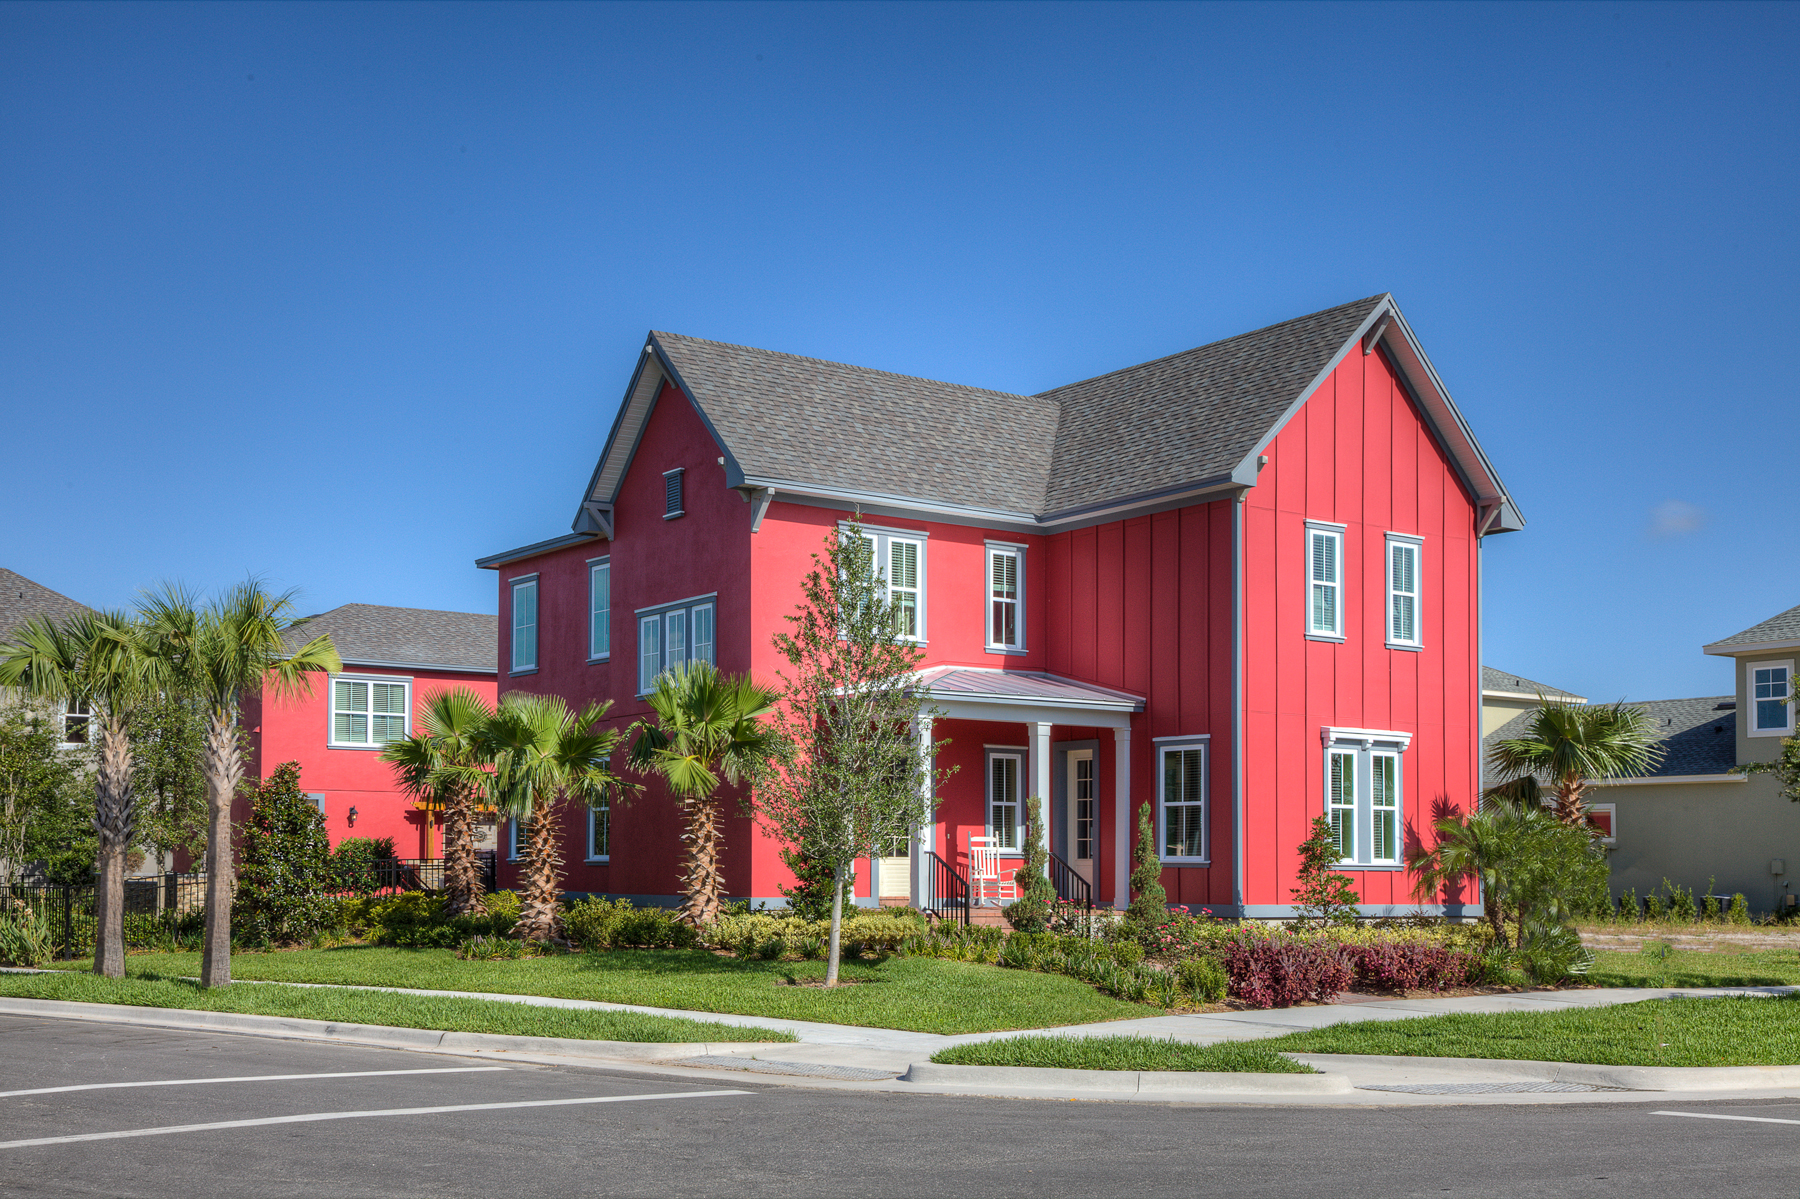 Board and batten exteriors - A red house with board and batten siding